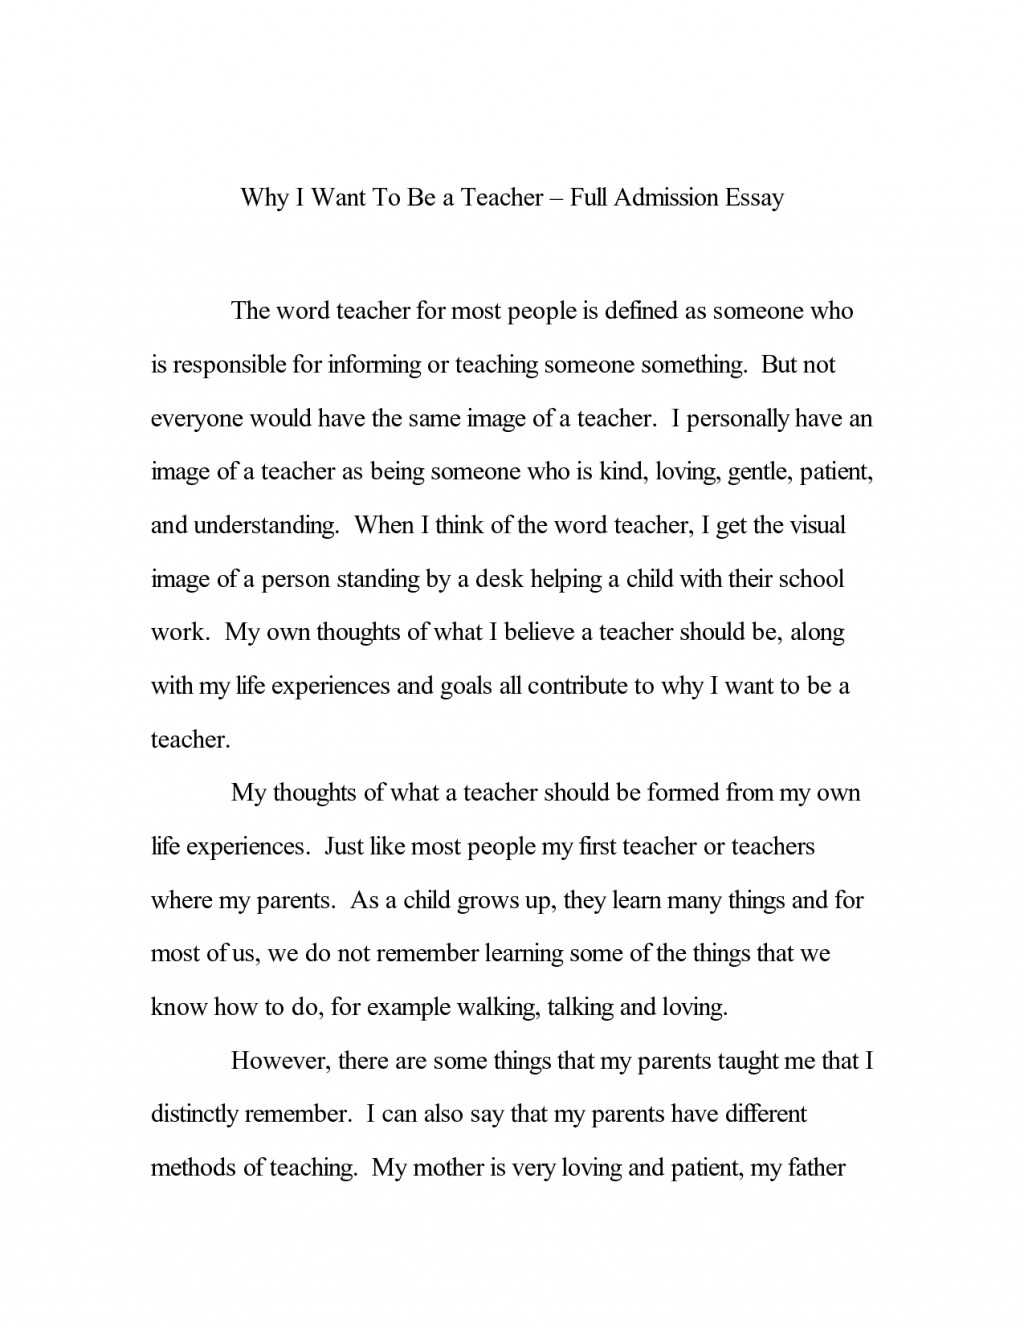 006 Word Essay Format Outline Sample Lending Scholarship Examples Career Goals Wi Why Do Youe This Single Mother About Yourself Pdf Financial Need Nursing Words Example Awesome You Deserve Think How To Write A Large